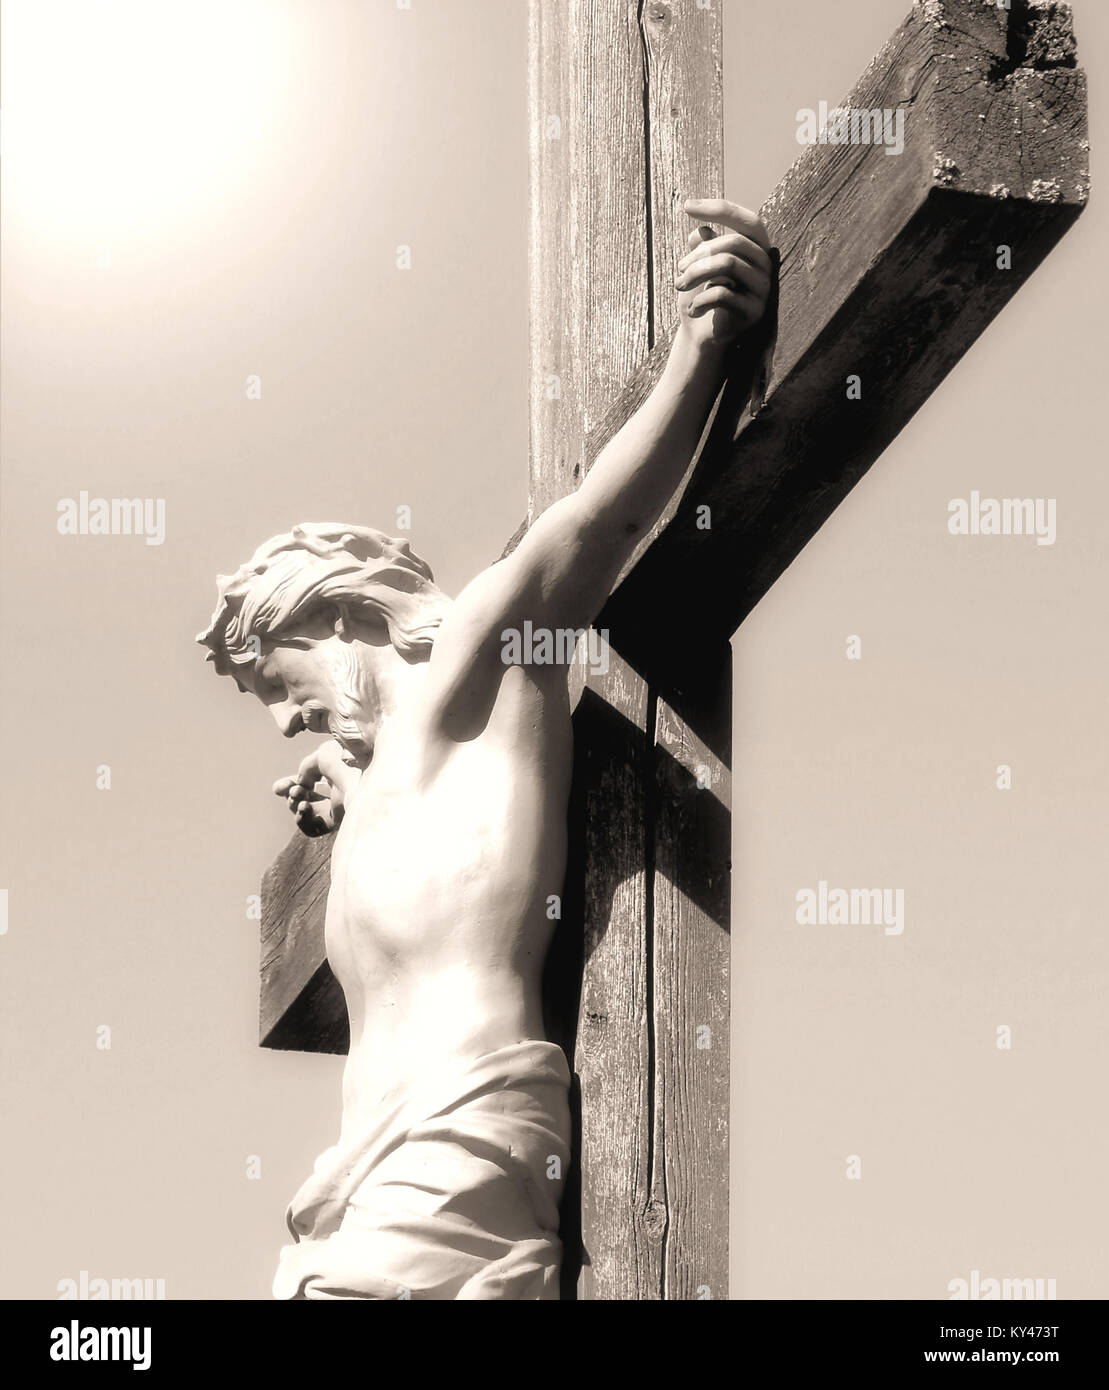 The Crucifixion - Christ nailed to a wooden cross, light shines from above - Stock Image